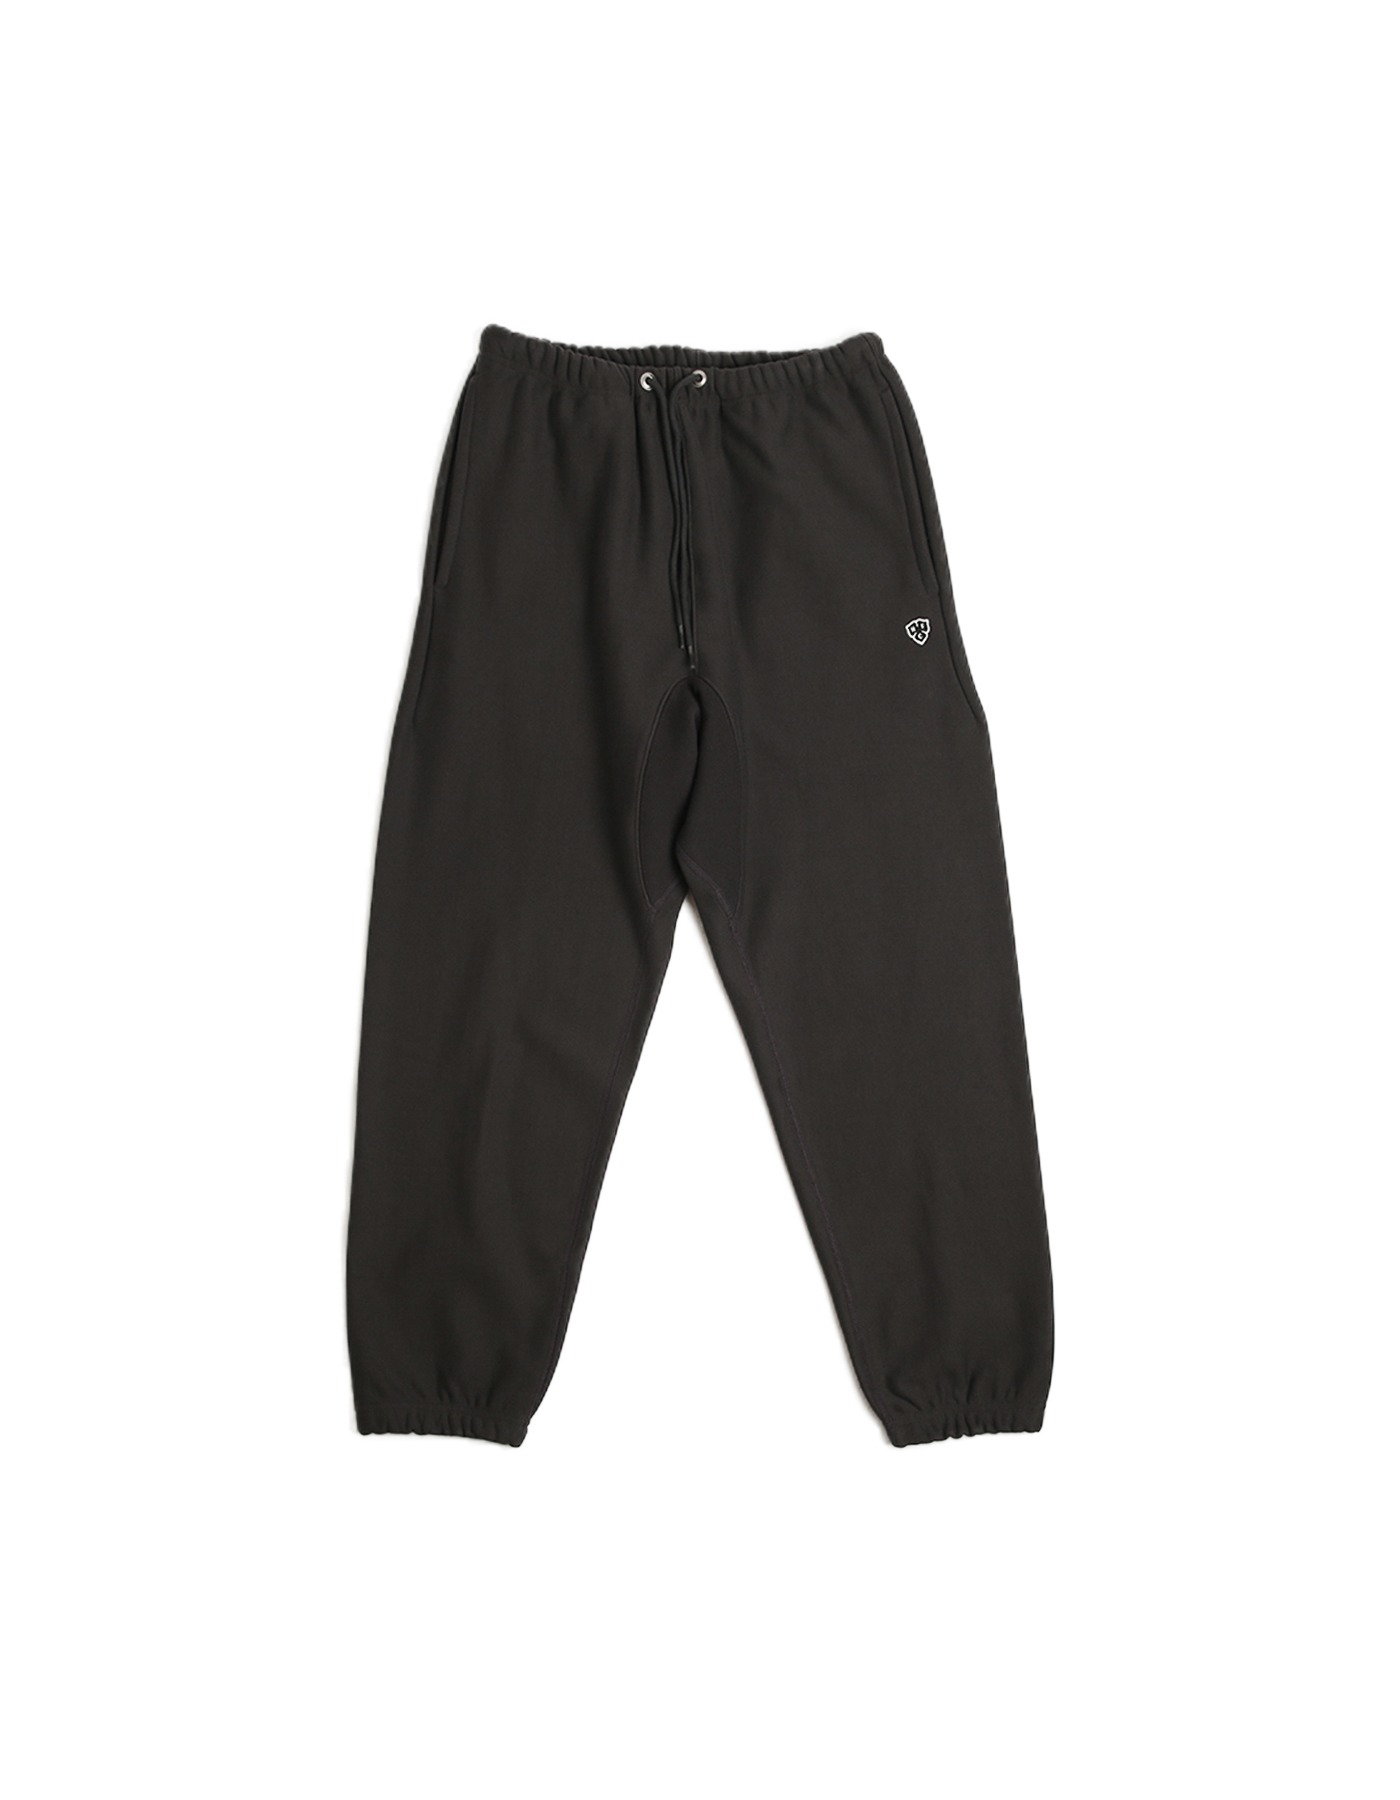 221 REVERSE SWEATPANTS / CHARCOAL